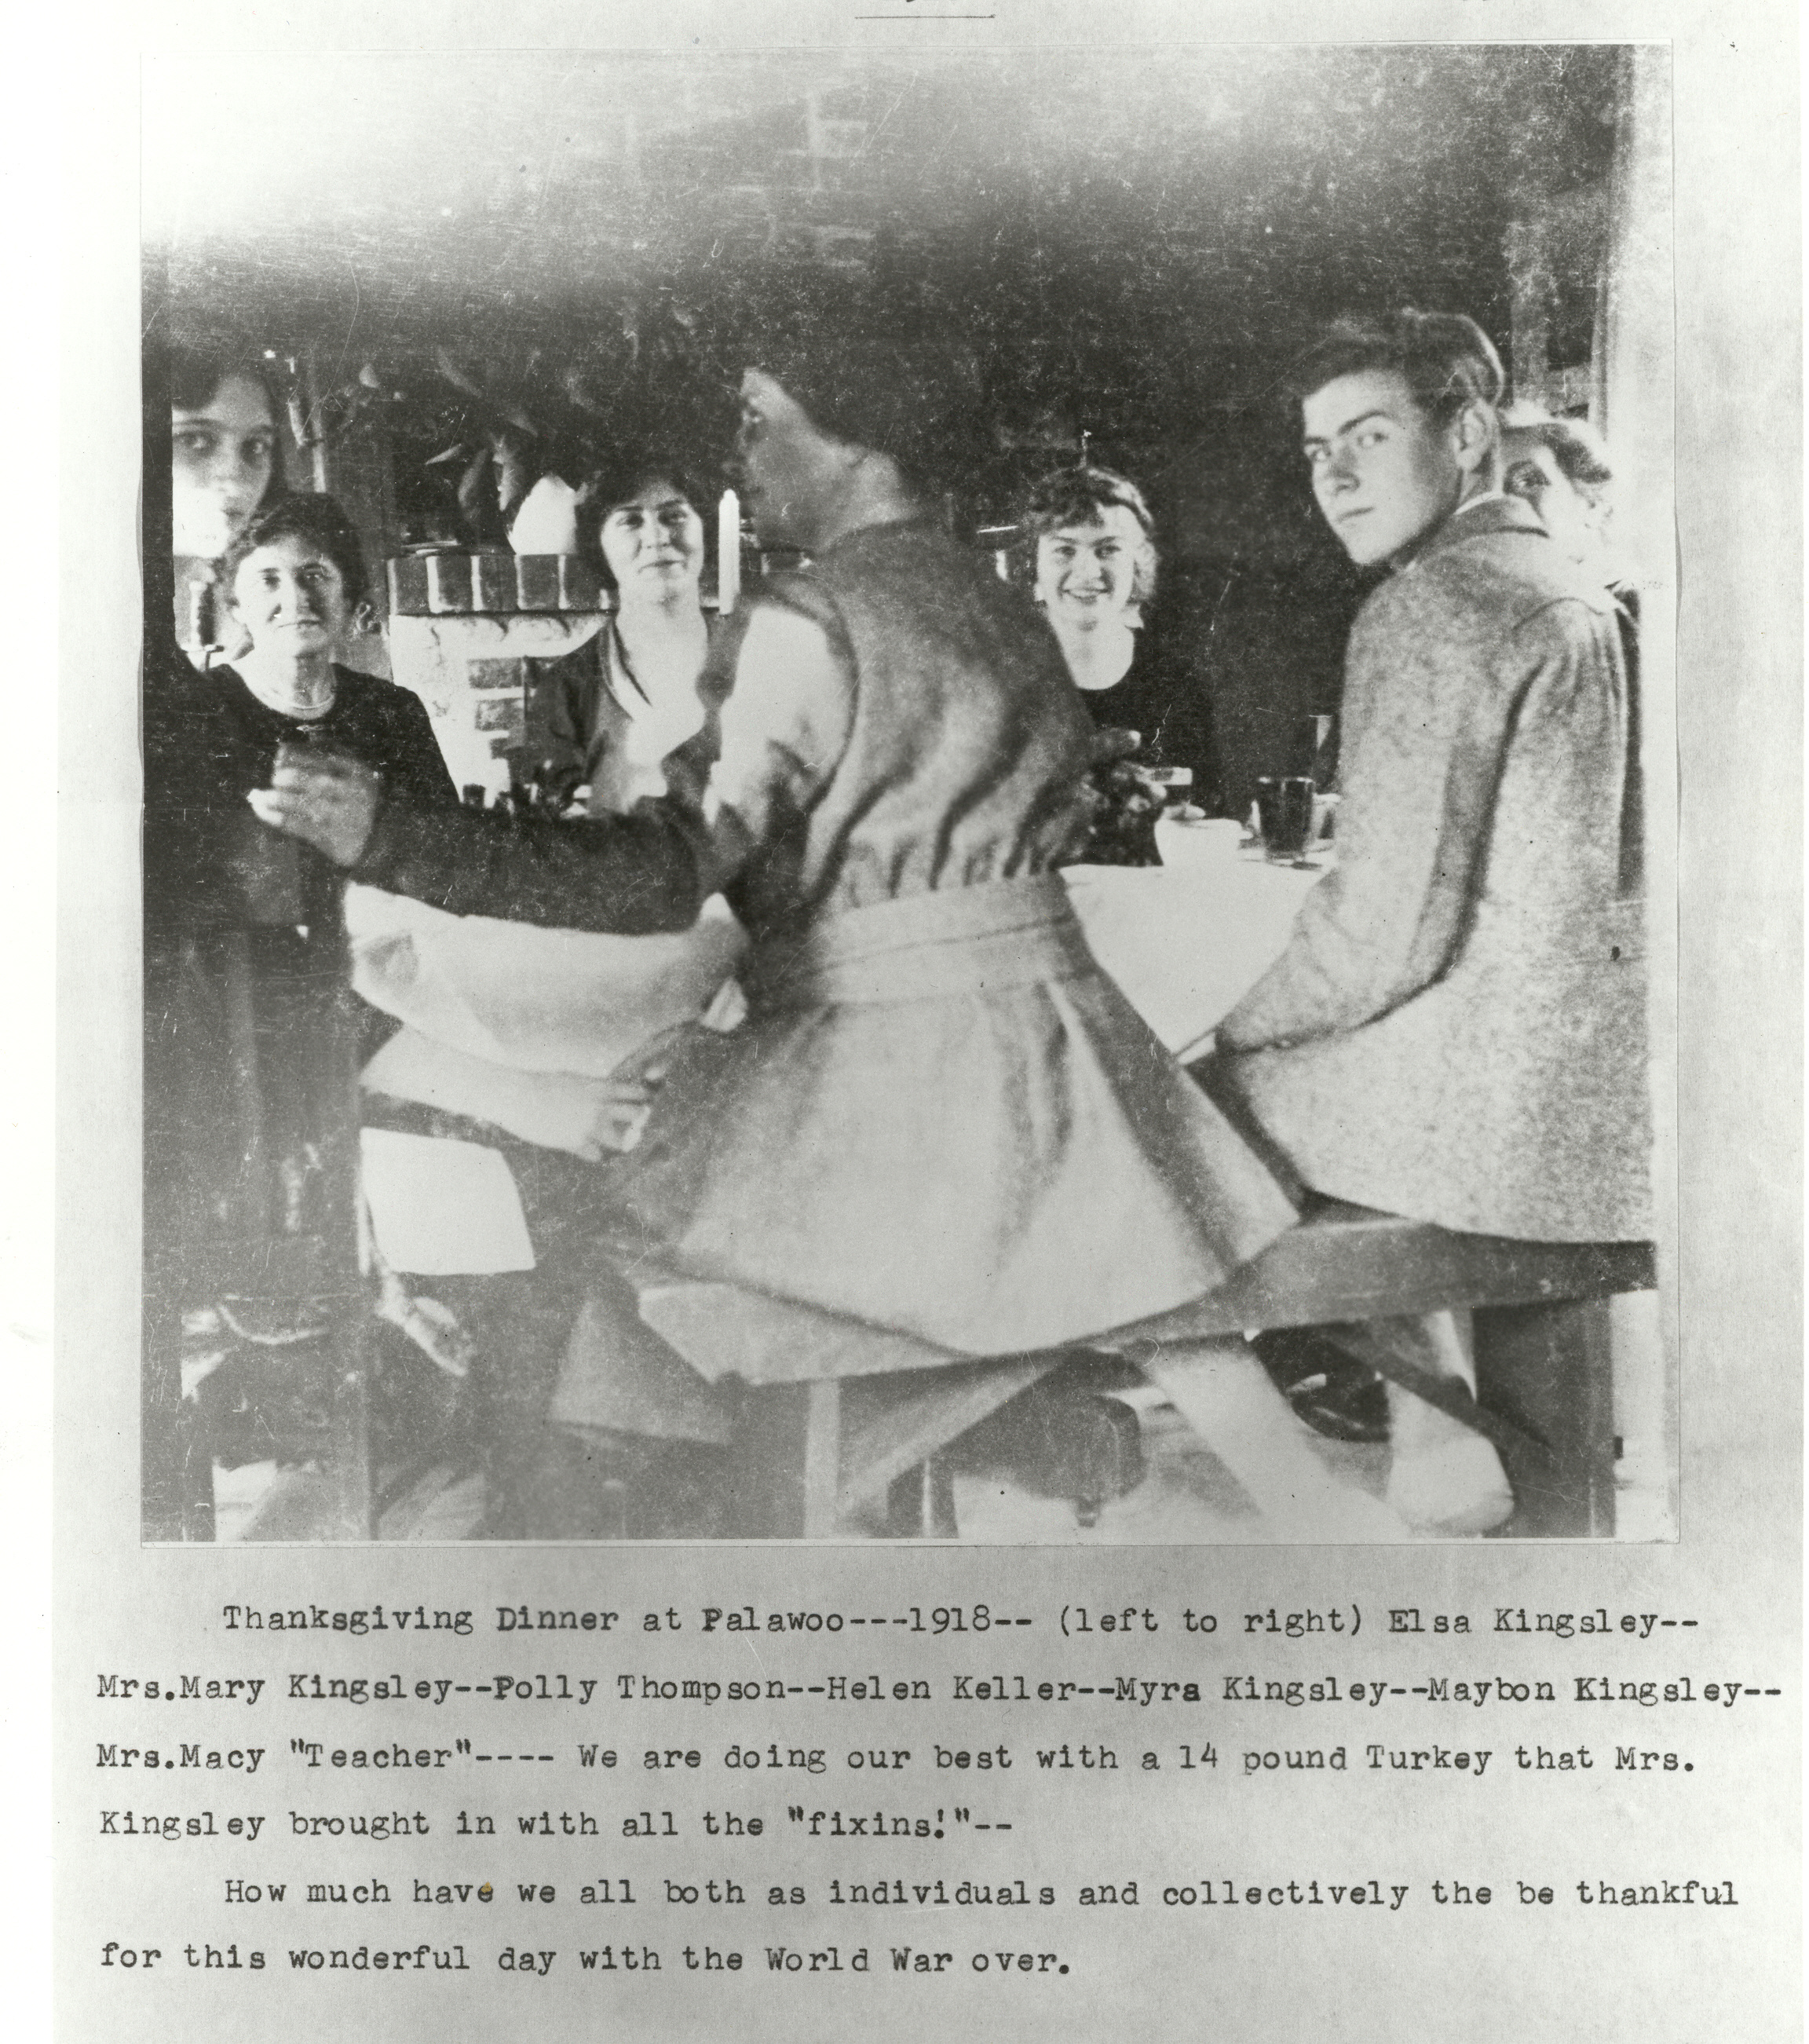 a photo of Helen Keller with friends celebrating Thanksgiving Dinner